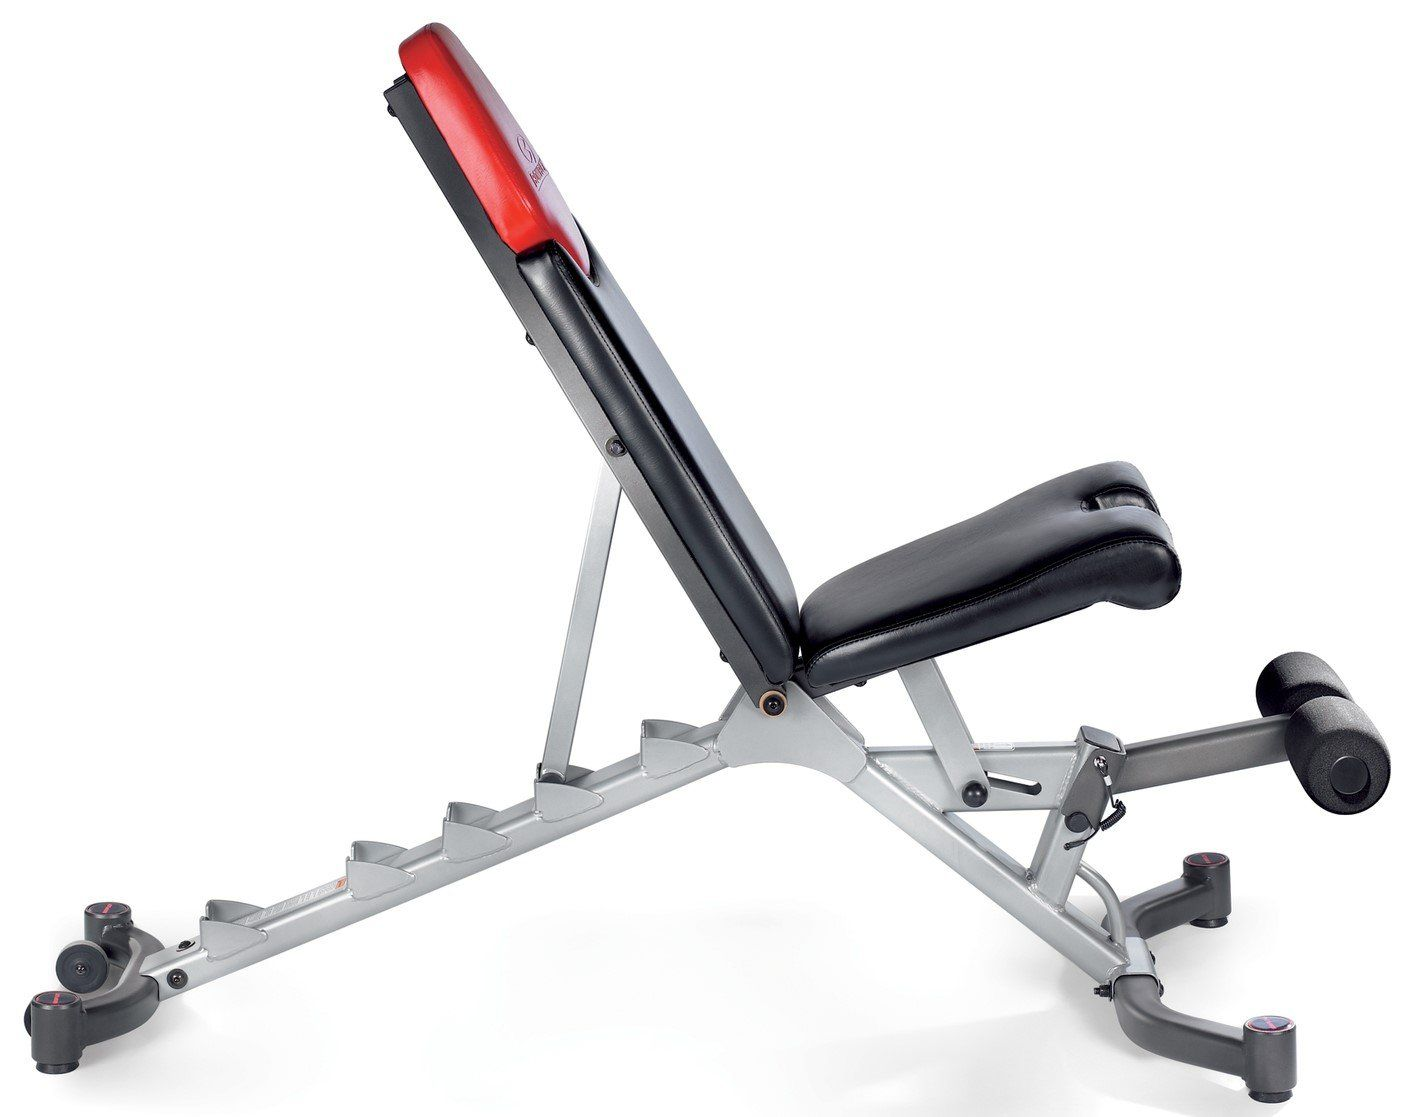 Bowflex 5 1 Adjustable Weight Bench Have A Look At The Image By Seeing The Link This Is An A Adjustable Bench Press Weight Benches Adjustable Weight Bench